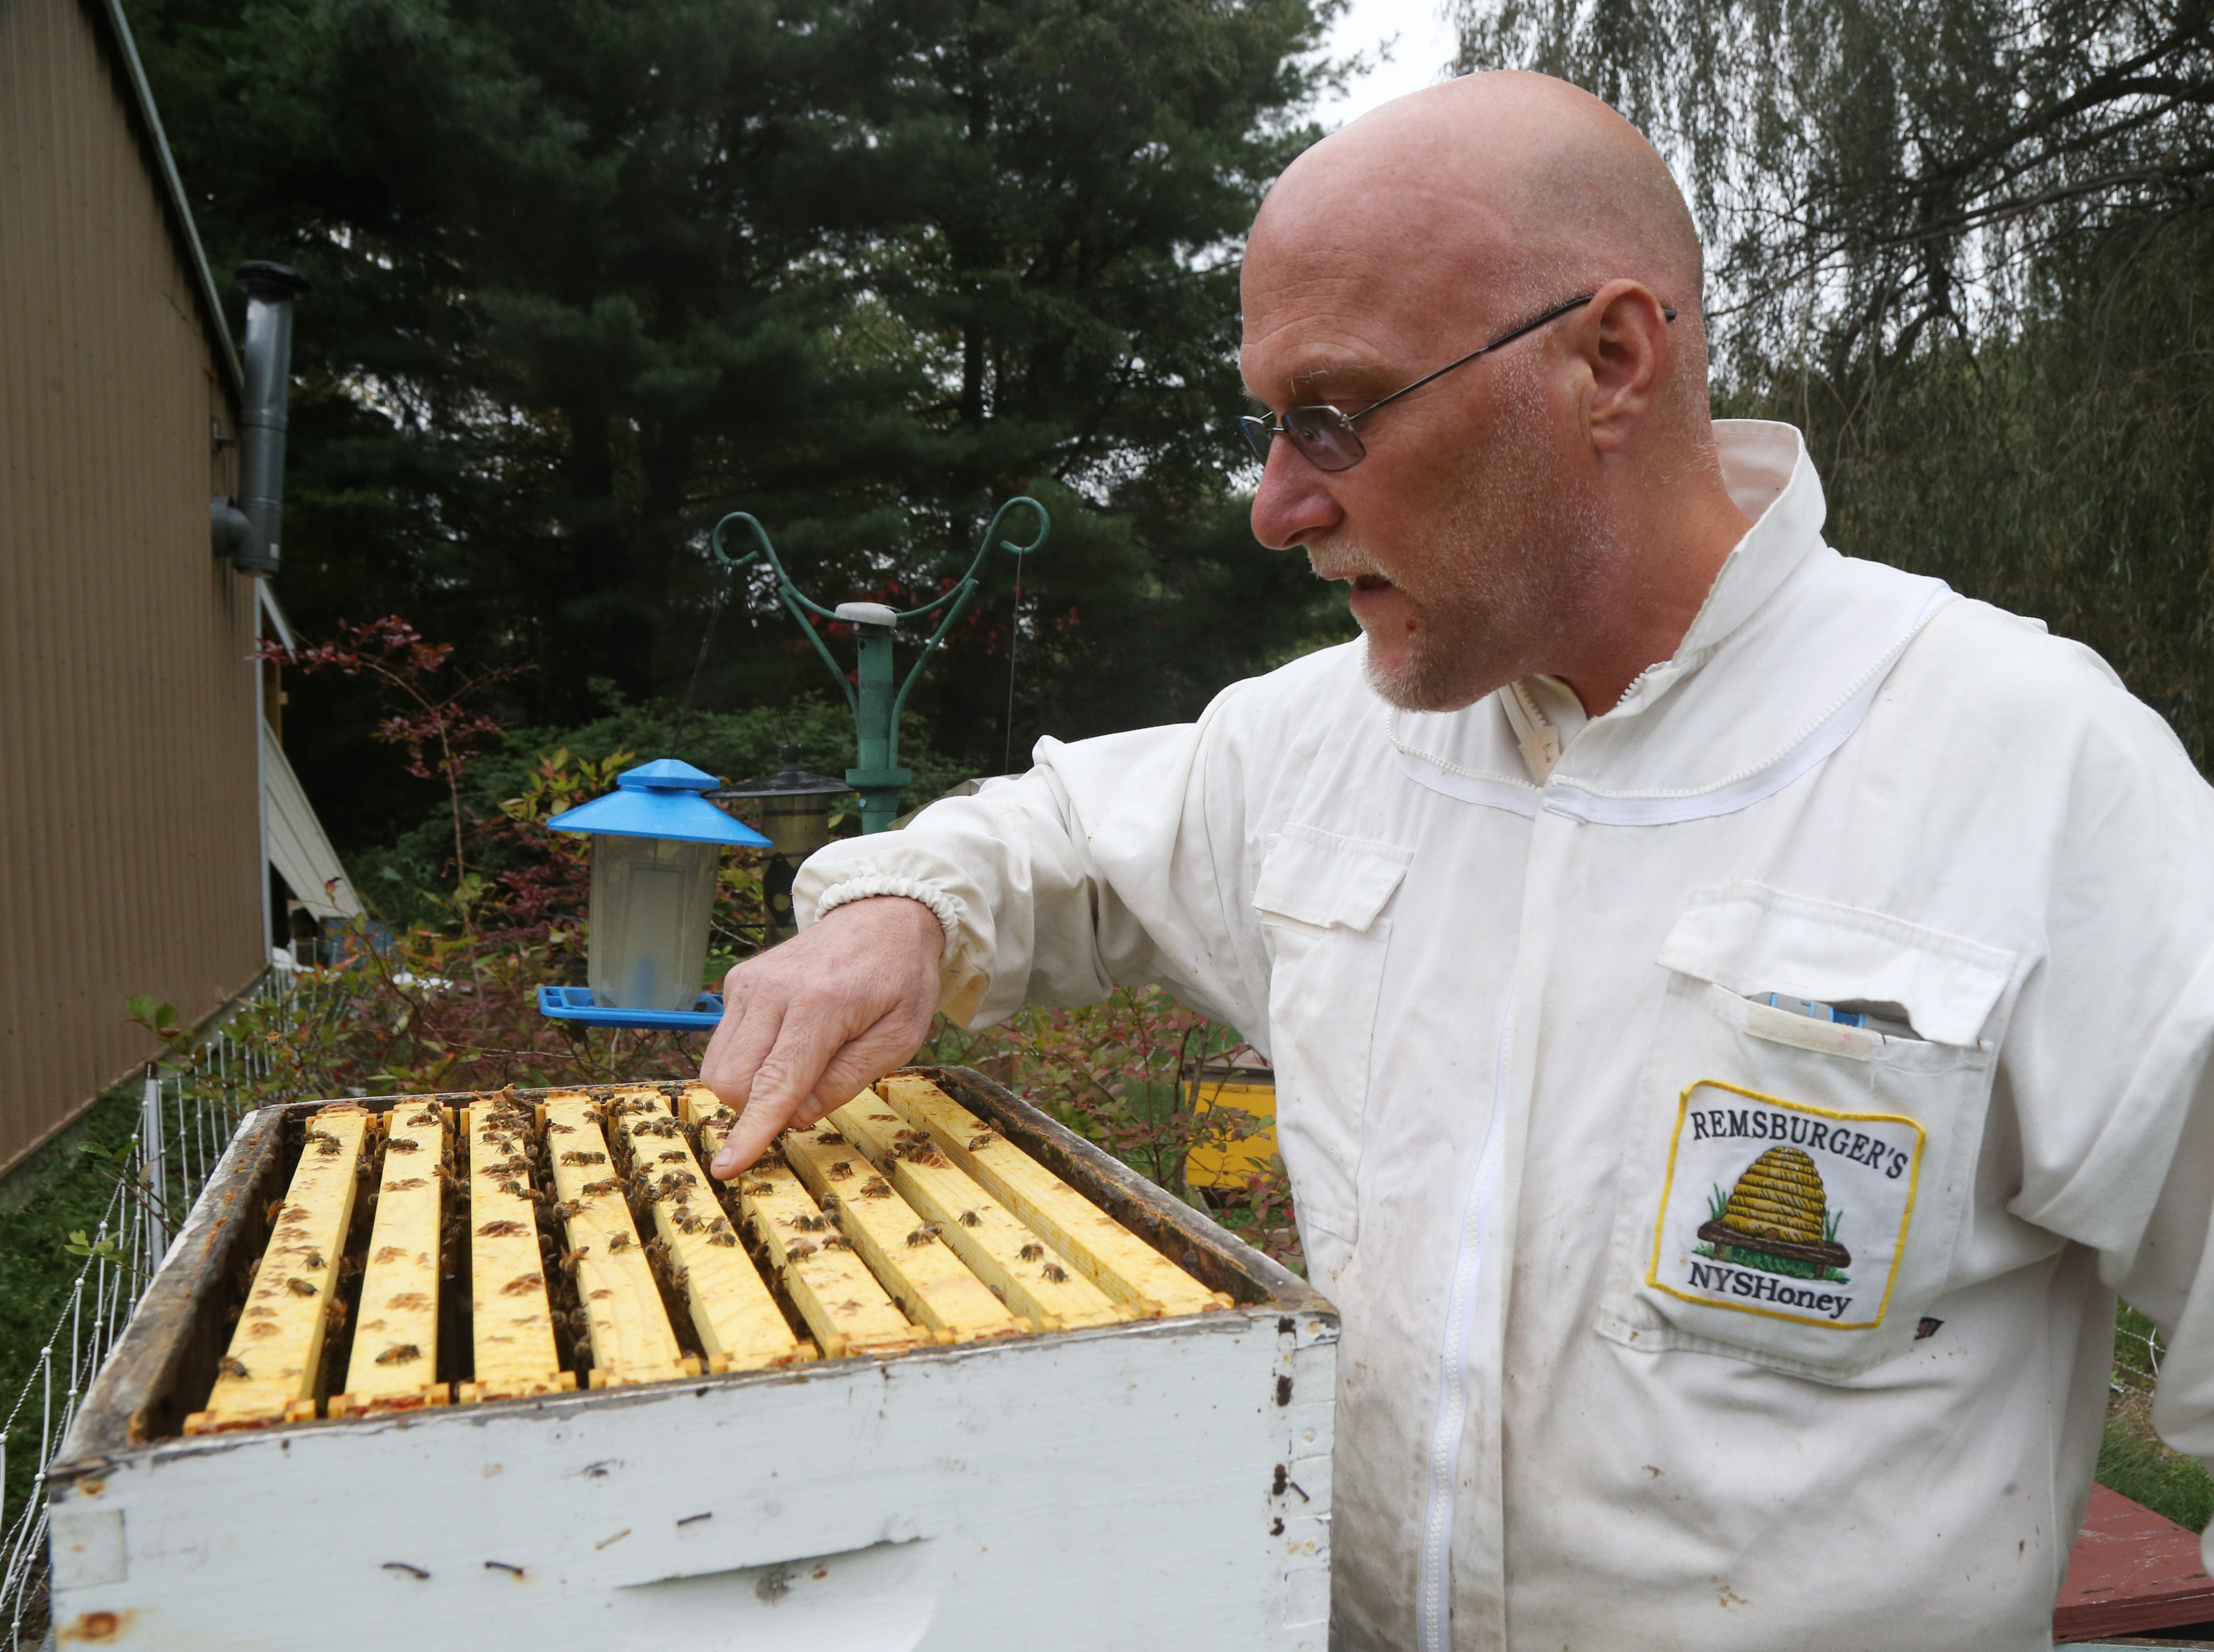 Dennis Remsburger looks over a beehive at his home in Pleasant Valley on October 8, 2018.